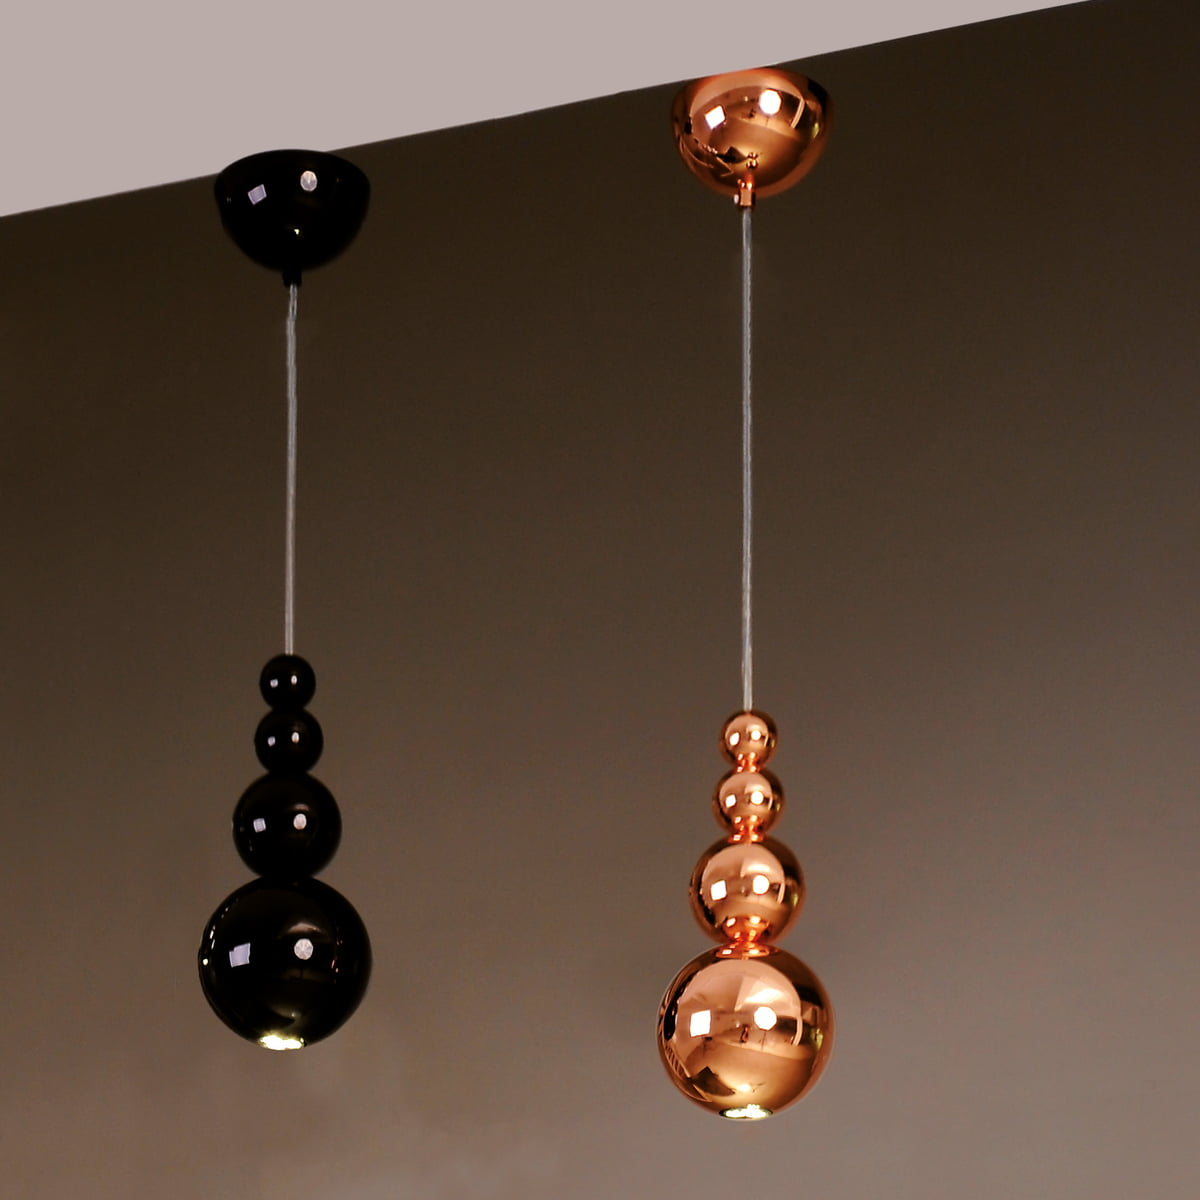 Suspension lumineuse bubble de innermost for Suspension lumineuse